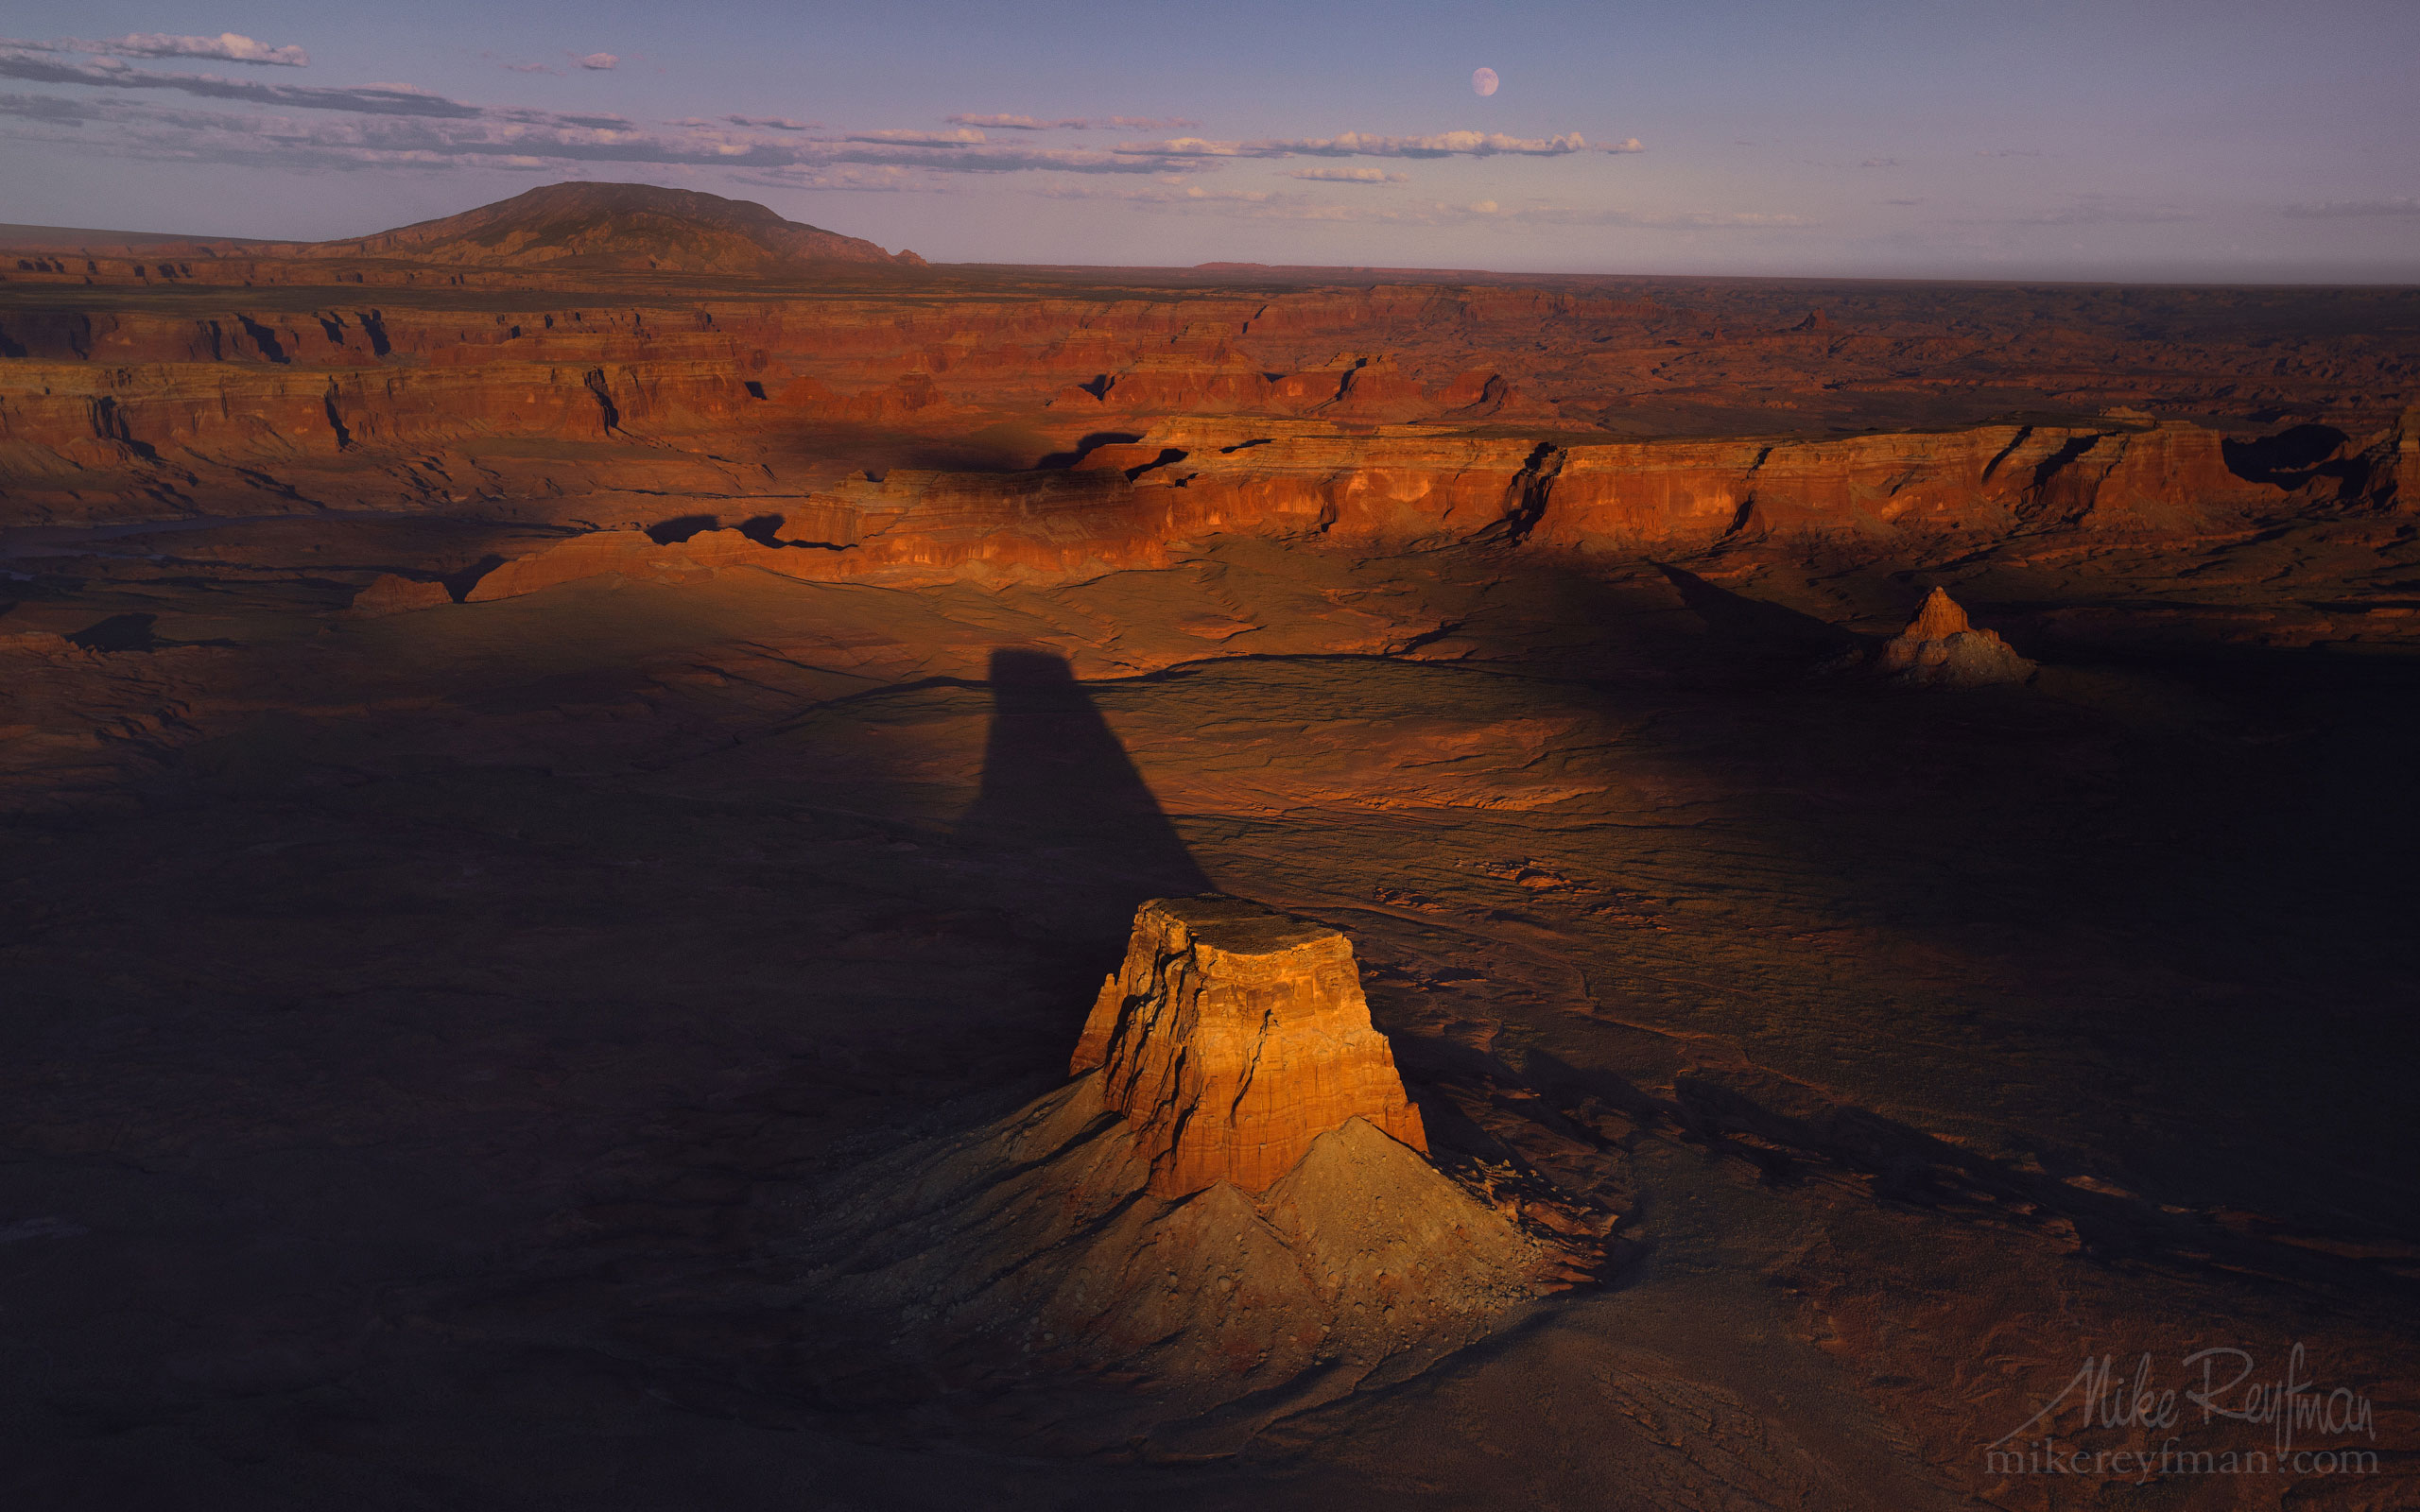 Tower Butte and Navajo Mountain. Glen Canyon NRA. Uta/Arizona, USA. 056-LP3_O3X5021.jpg - Lake Powell, Glen Canyon NAR. Colorado and Sun Juan Rivers. Utah/Arizona, USA  - Mike Reyfman Photography